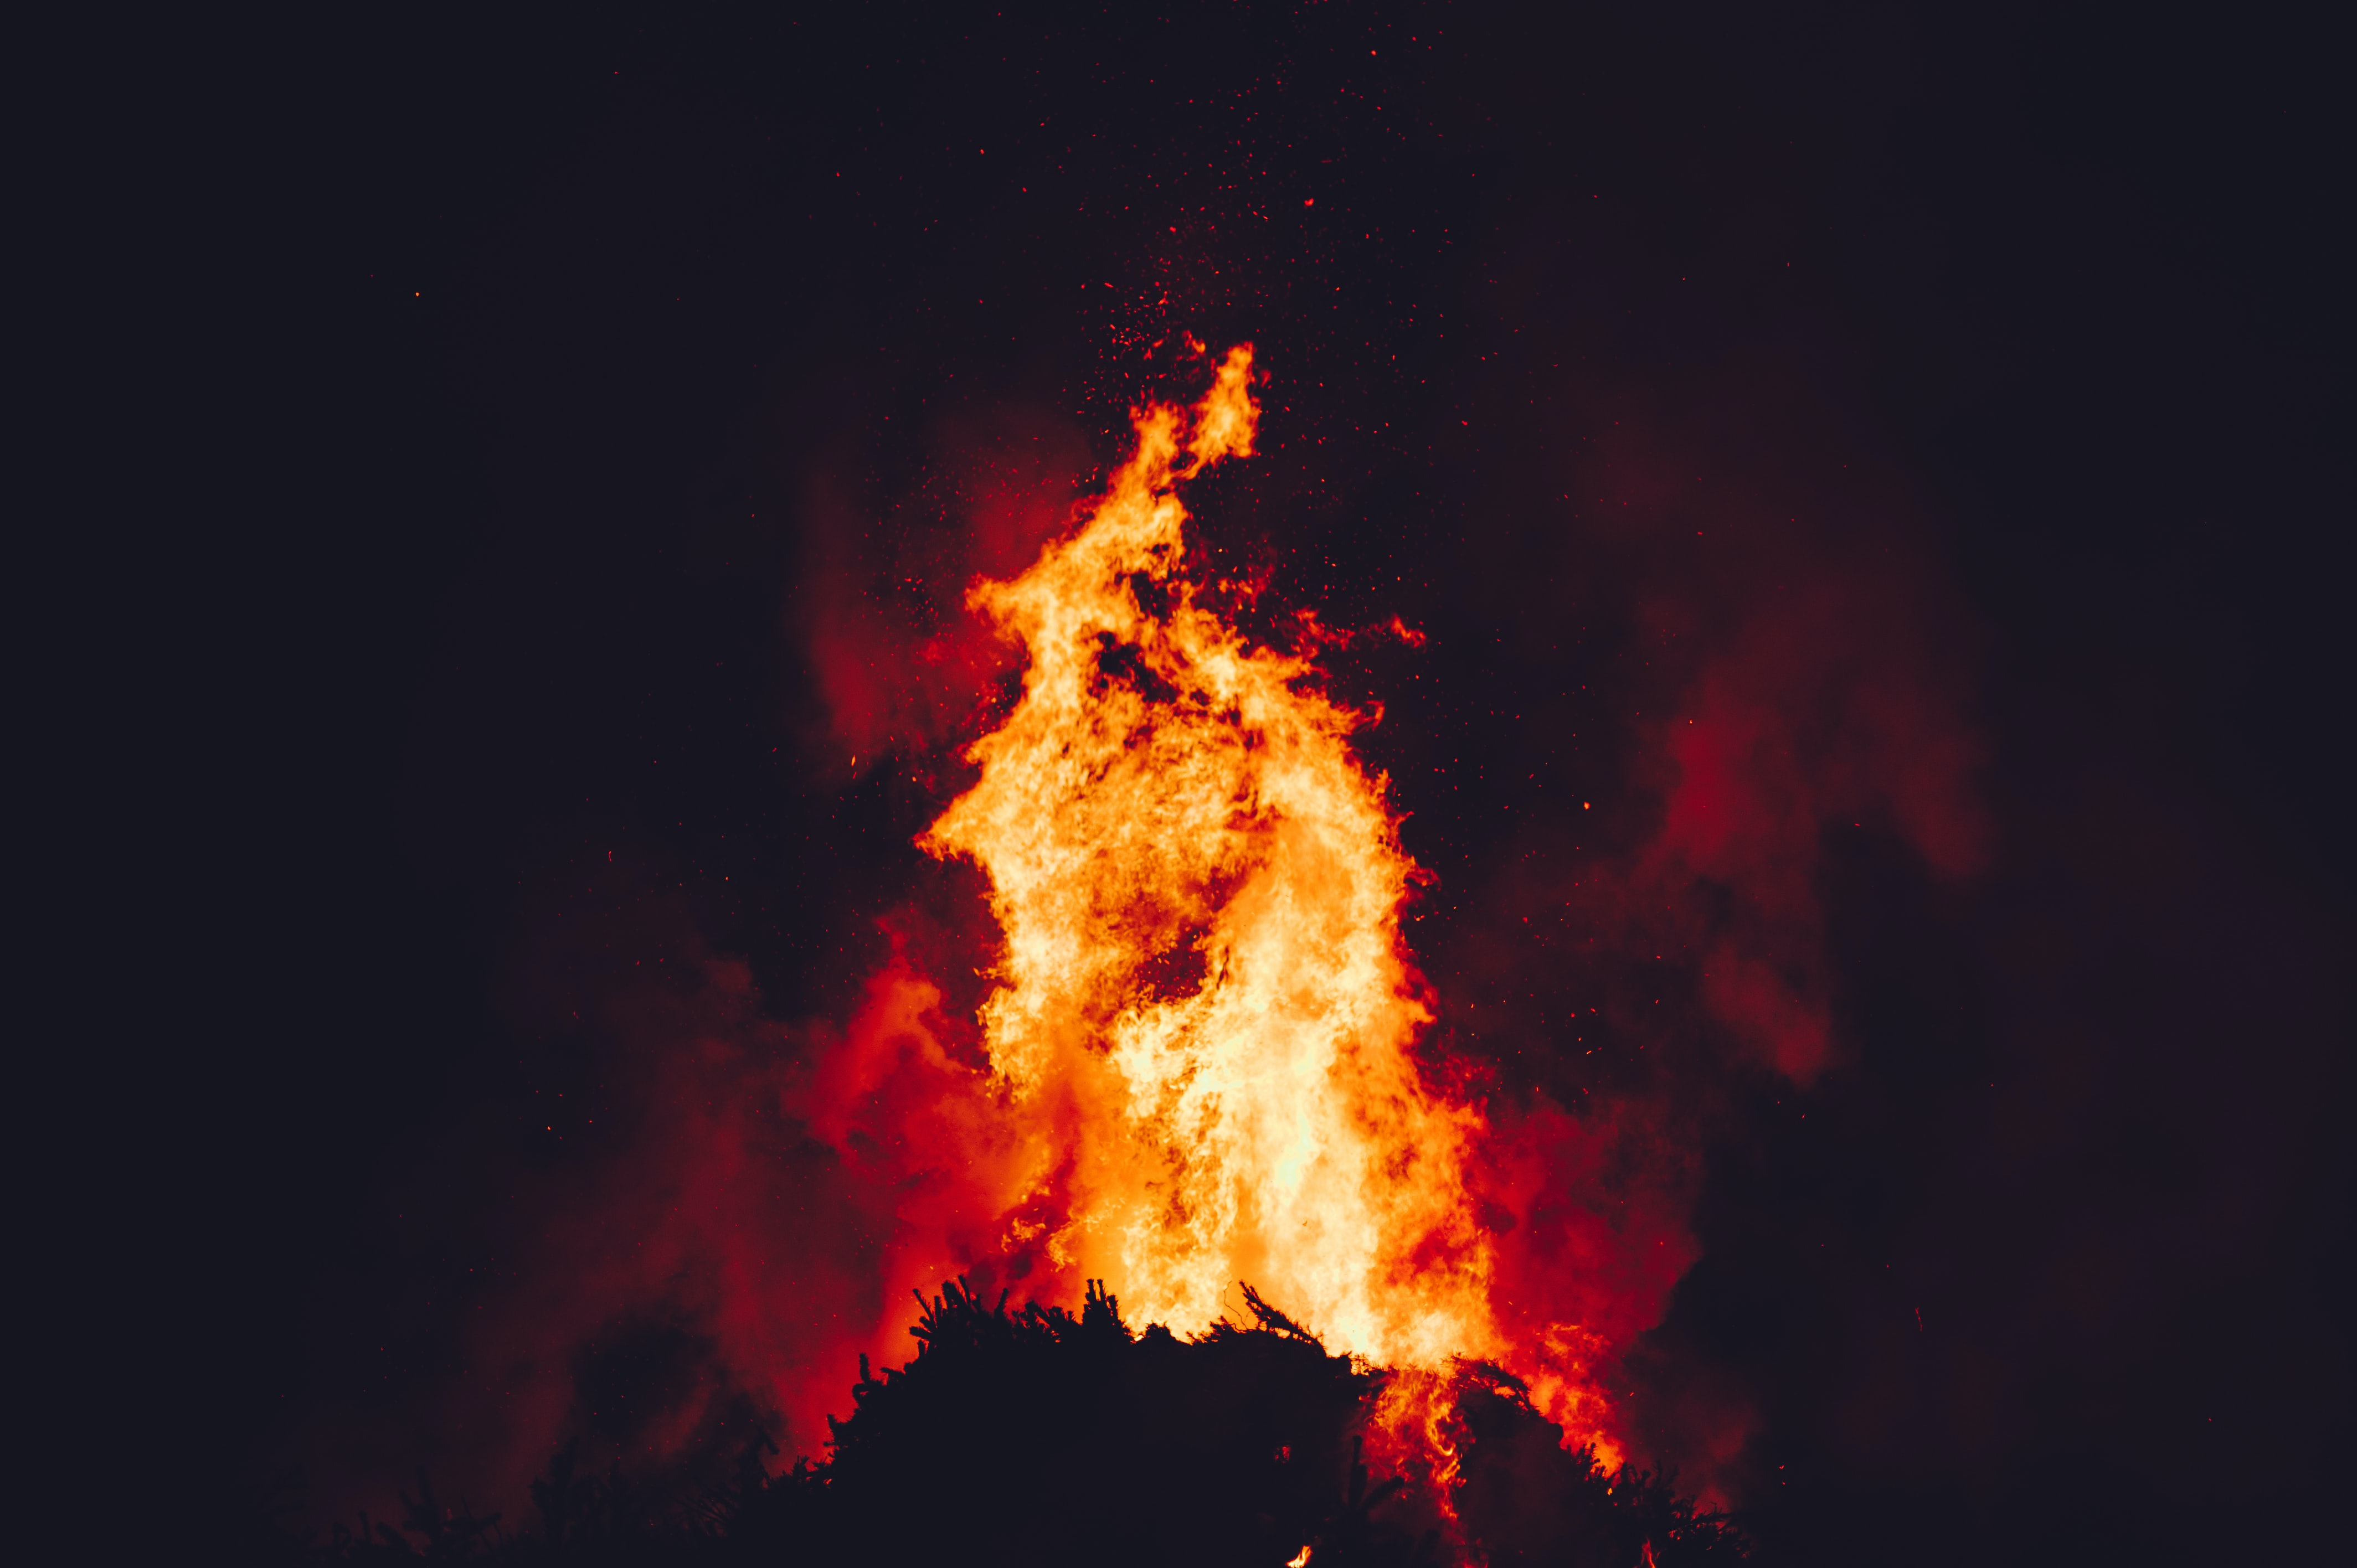 A blazing bonfire in the night